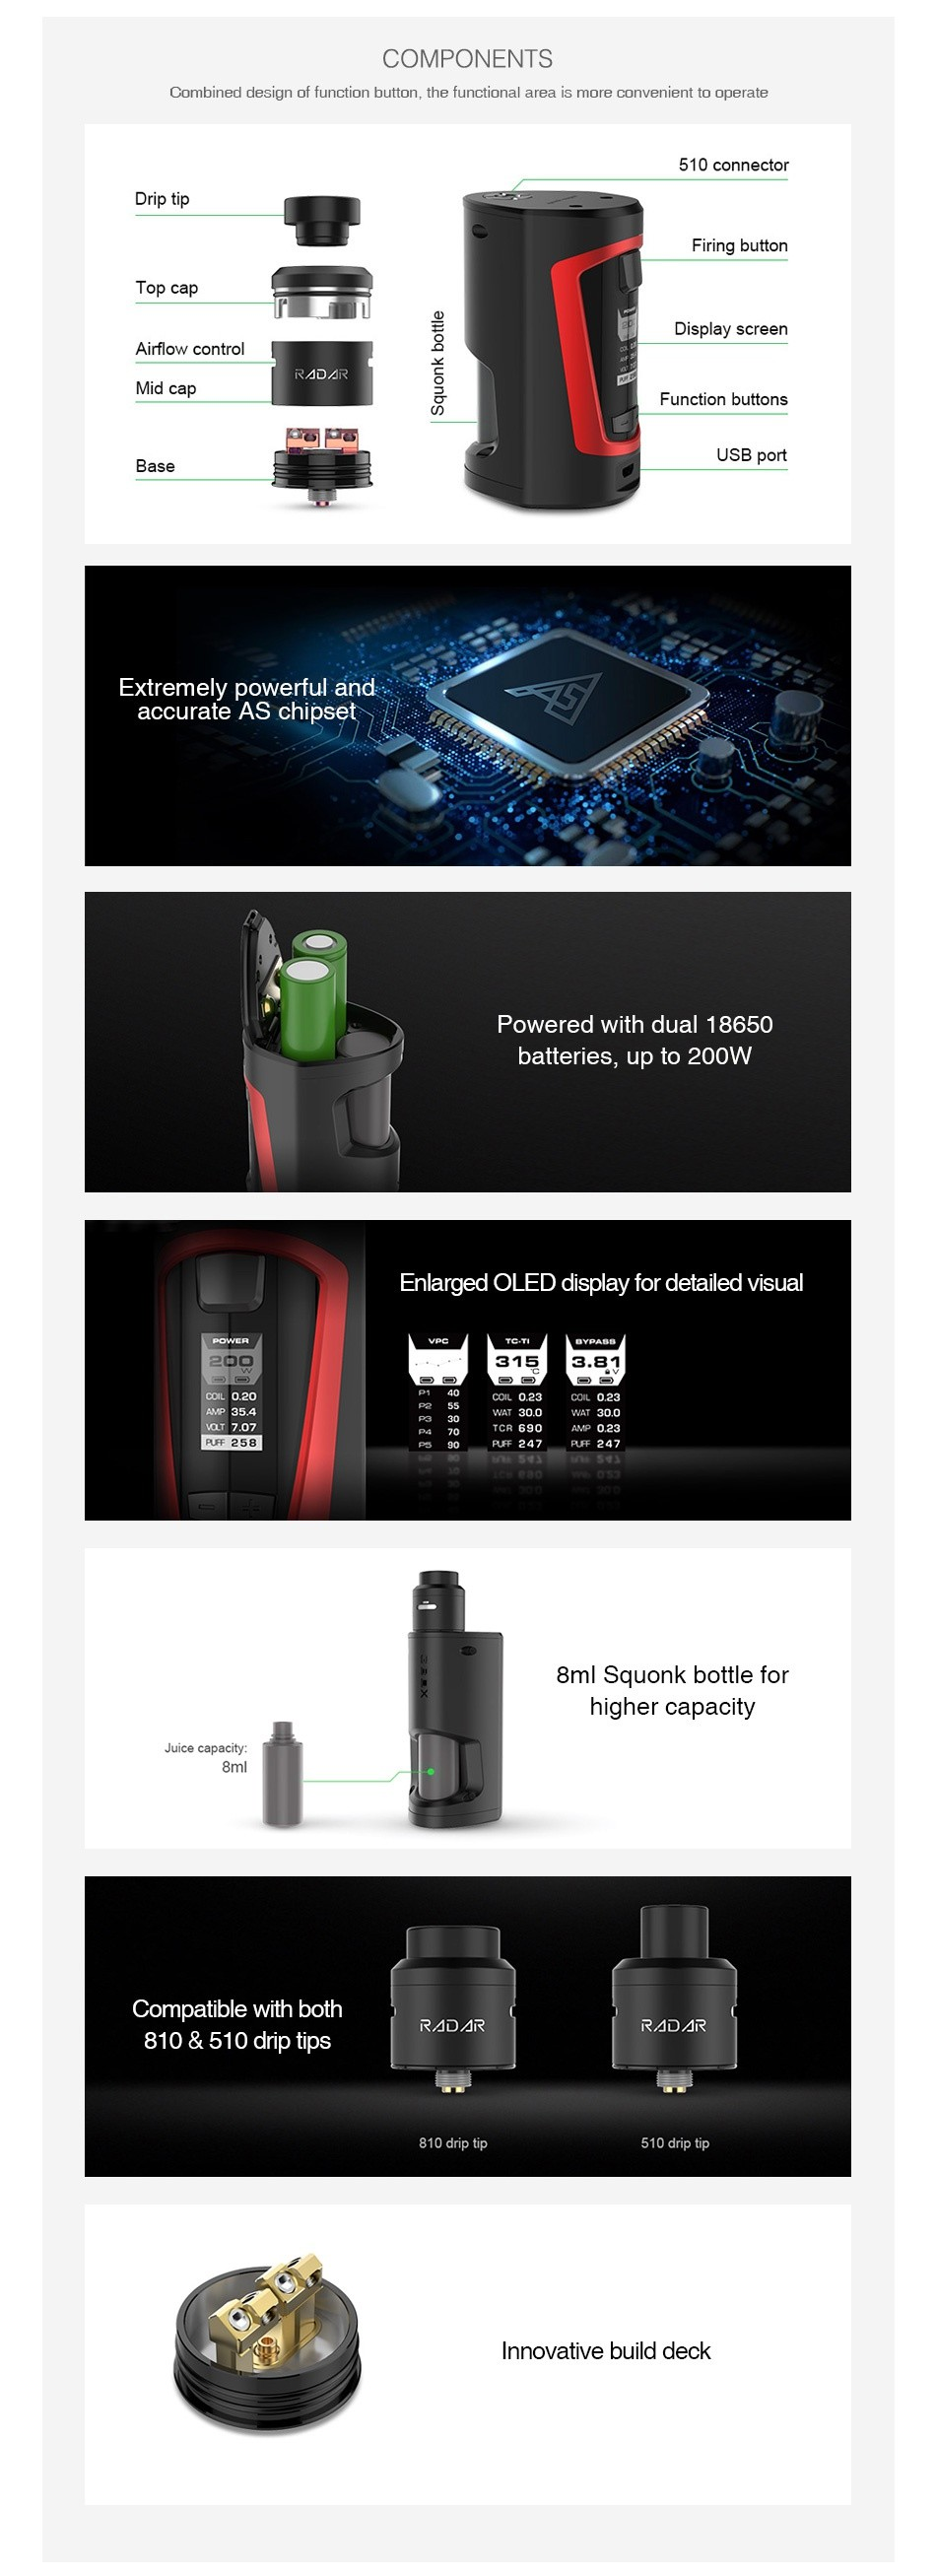 GeekVape GBOX Squonker 200W TC Kit with Radar RDA COMPONENTS Combined design ot tunction button  the functional area is more convenient to operate 510 connect Drip tip Firing button Display screen Airow ccntrol Function buttons  ase USB port EXtremely powerful ani accurate chipset  1 Powered with dual 18650 batteries  up to 200W Enlarged oled display for detailed visual    8ml squonk bottle for higher capacity Juice capacity  Compatible with both 10  510 drip tips Innovative build deck